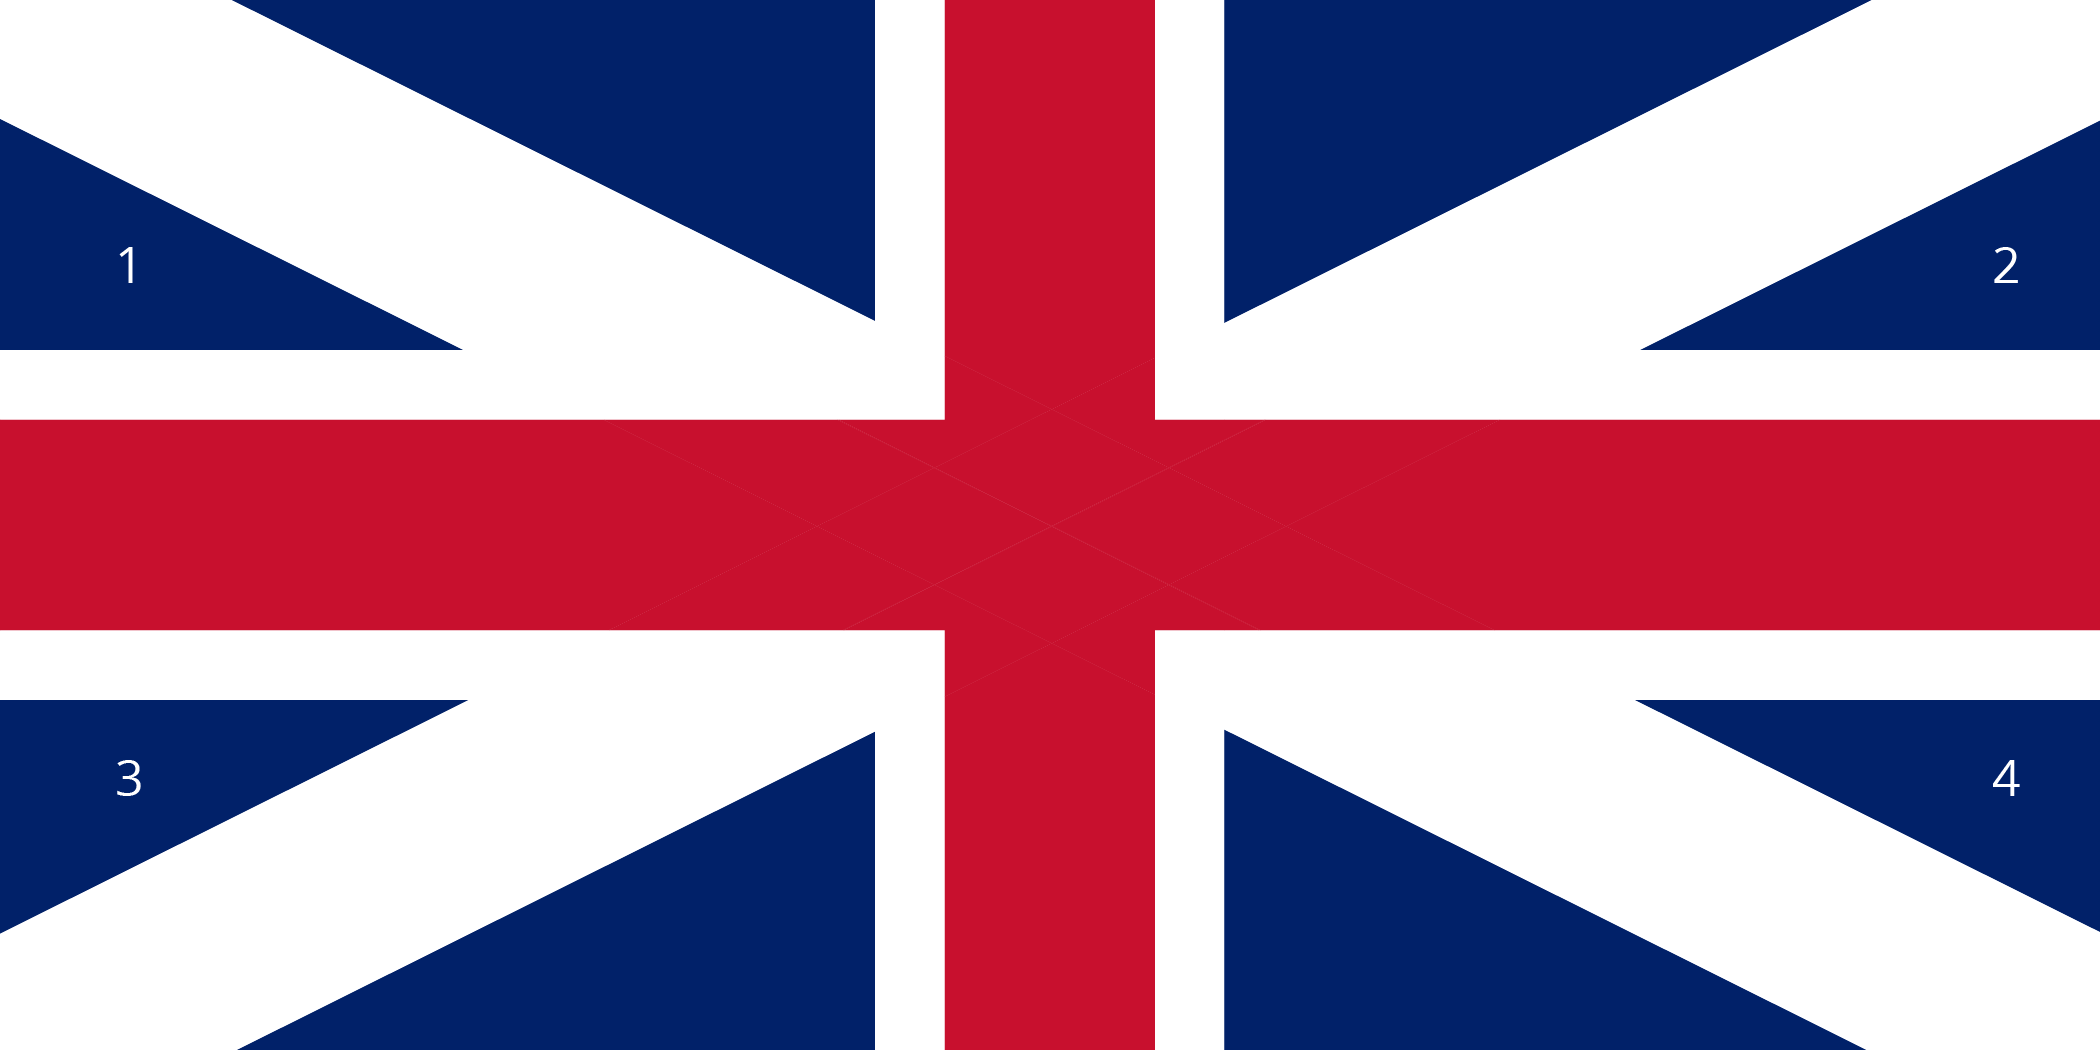 An image of an older version of the flag of Great Britain. The flag is a rectangle with a vertical length about twice the width. Red stripes divide the flag in half vertically and horizontally. White stripes connect the vertices along diagonals, crossing behind the red stripes. The remaining area is composed of 8 blue right triangles.   At the top of the flag, 2 large right triangles line up on either side of the vertical red stripe by their shorter square sides, so that they are mirror images of each other. At the bottom of the flag, 2 large right triangles line up on either side of the vertical red stripe by their shorter square sides, so that they are mirror images of each other.   At the left side, 2 small right triangles line up on either side of the horizontal red stripe by their longer square sides so that they are mirror images of each other. The triangle above the red stripe is labeled 1; the triangle below the red strip is labeled 3. At the right side, 2 small right triangles line up on either side of the horizontal red stripe by their longer square sides so that they are mirror images of each other. The triangle above the red stripe is labeled 2; the triangle below the red strip is labeled 4.